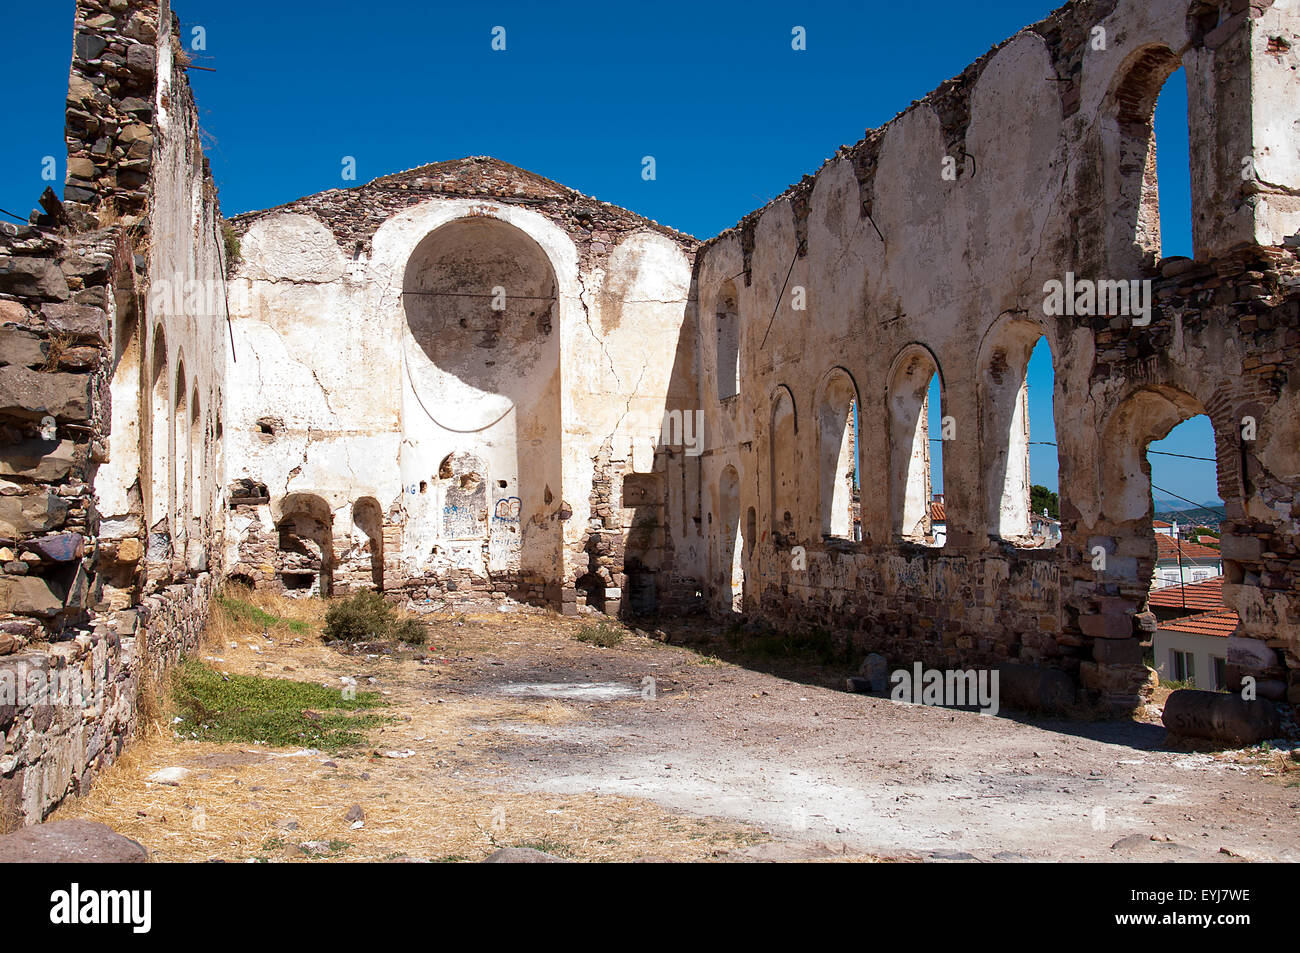 Cunda island church ruins - Stock Image